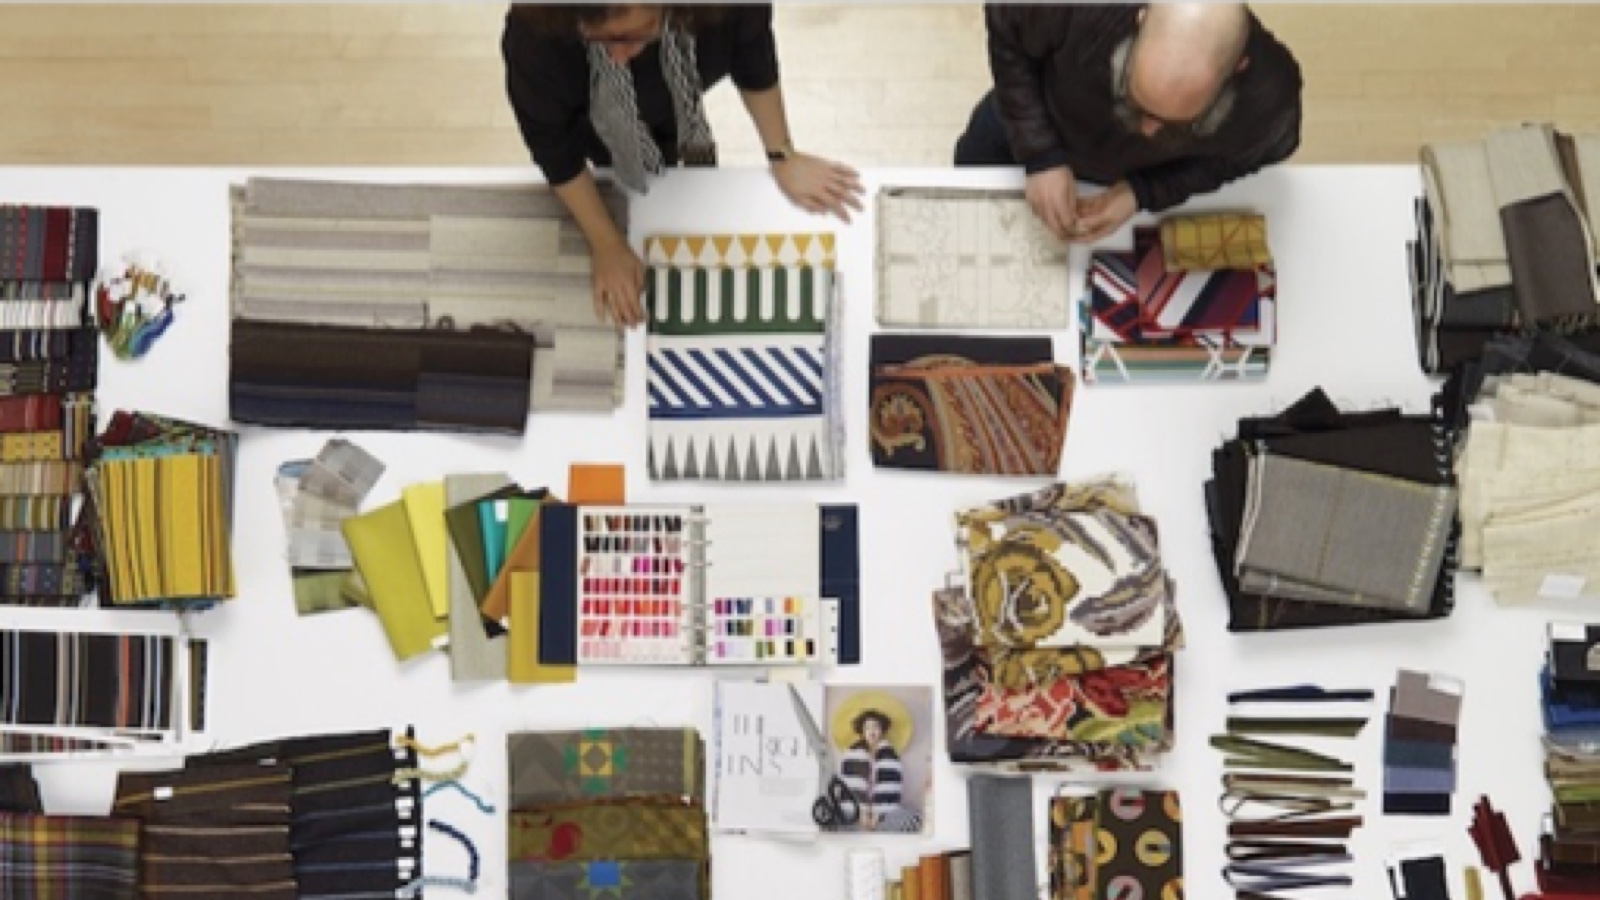 Overhead shot of two people discussing fabric swatches, ribbons, and swatchbook on large white table. Fabrics include a variety of striped and floral patterns, in a rainbow of colors.